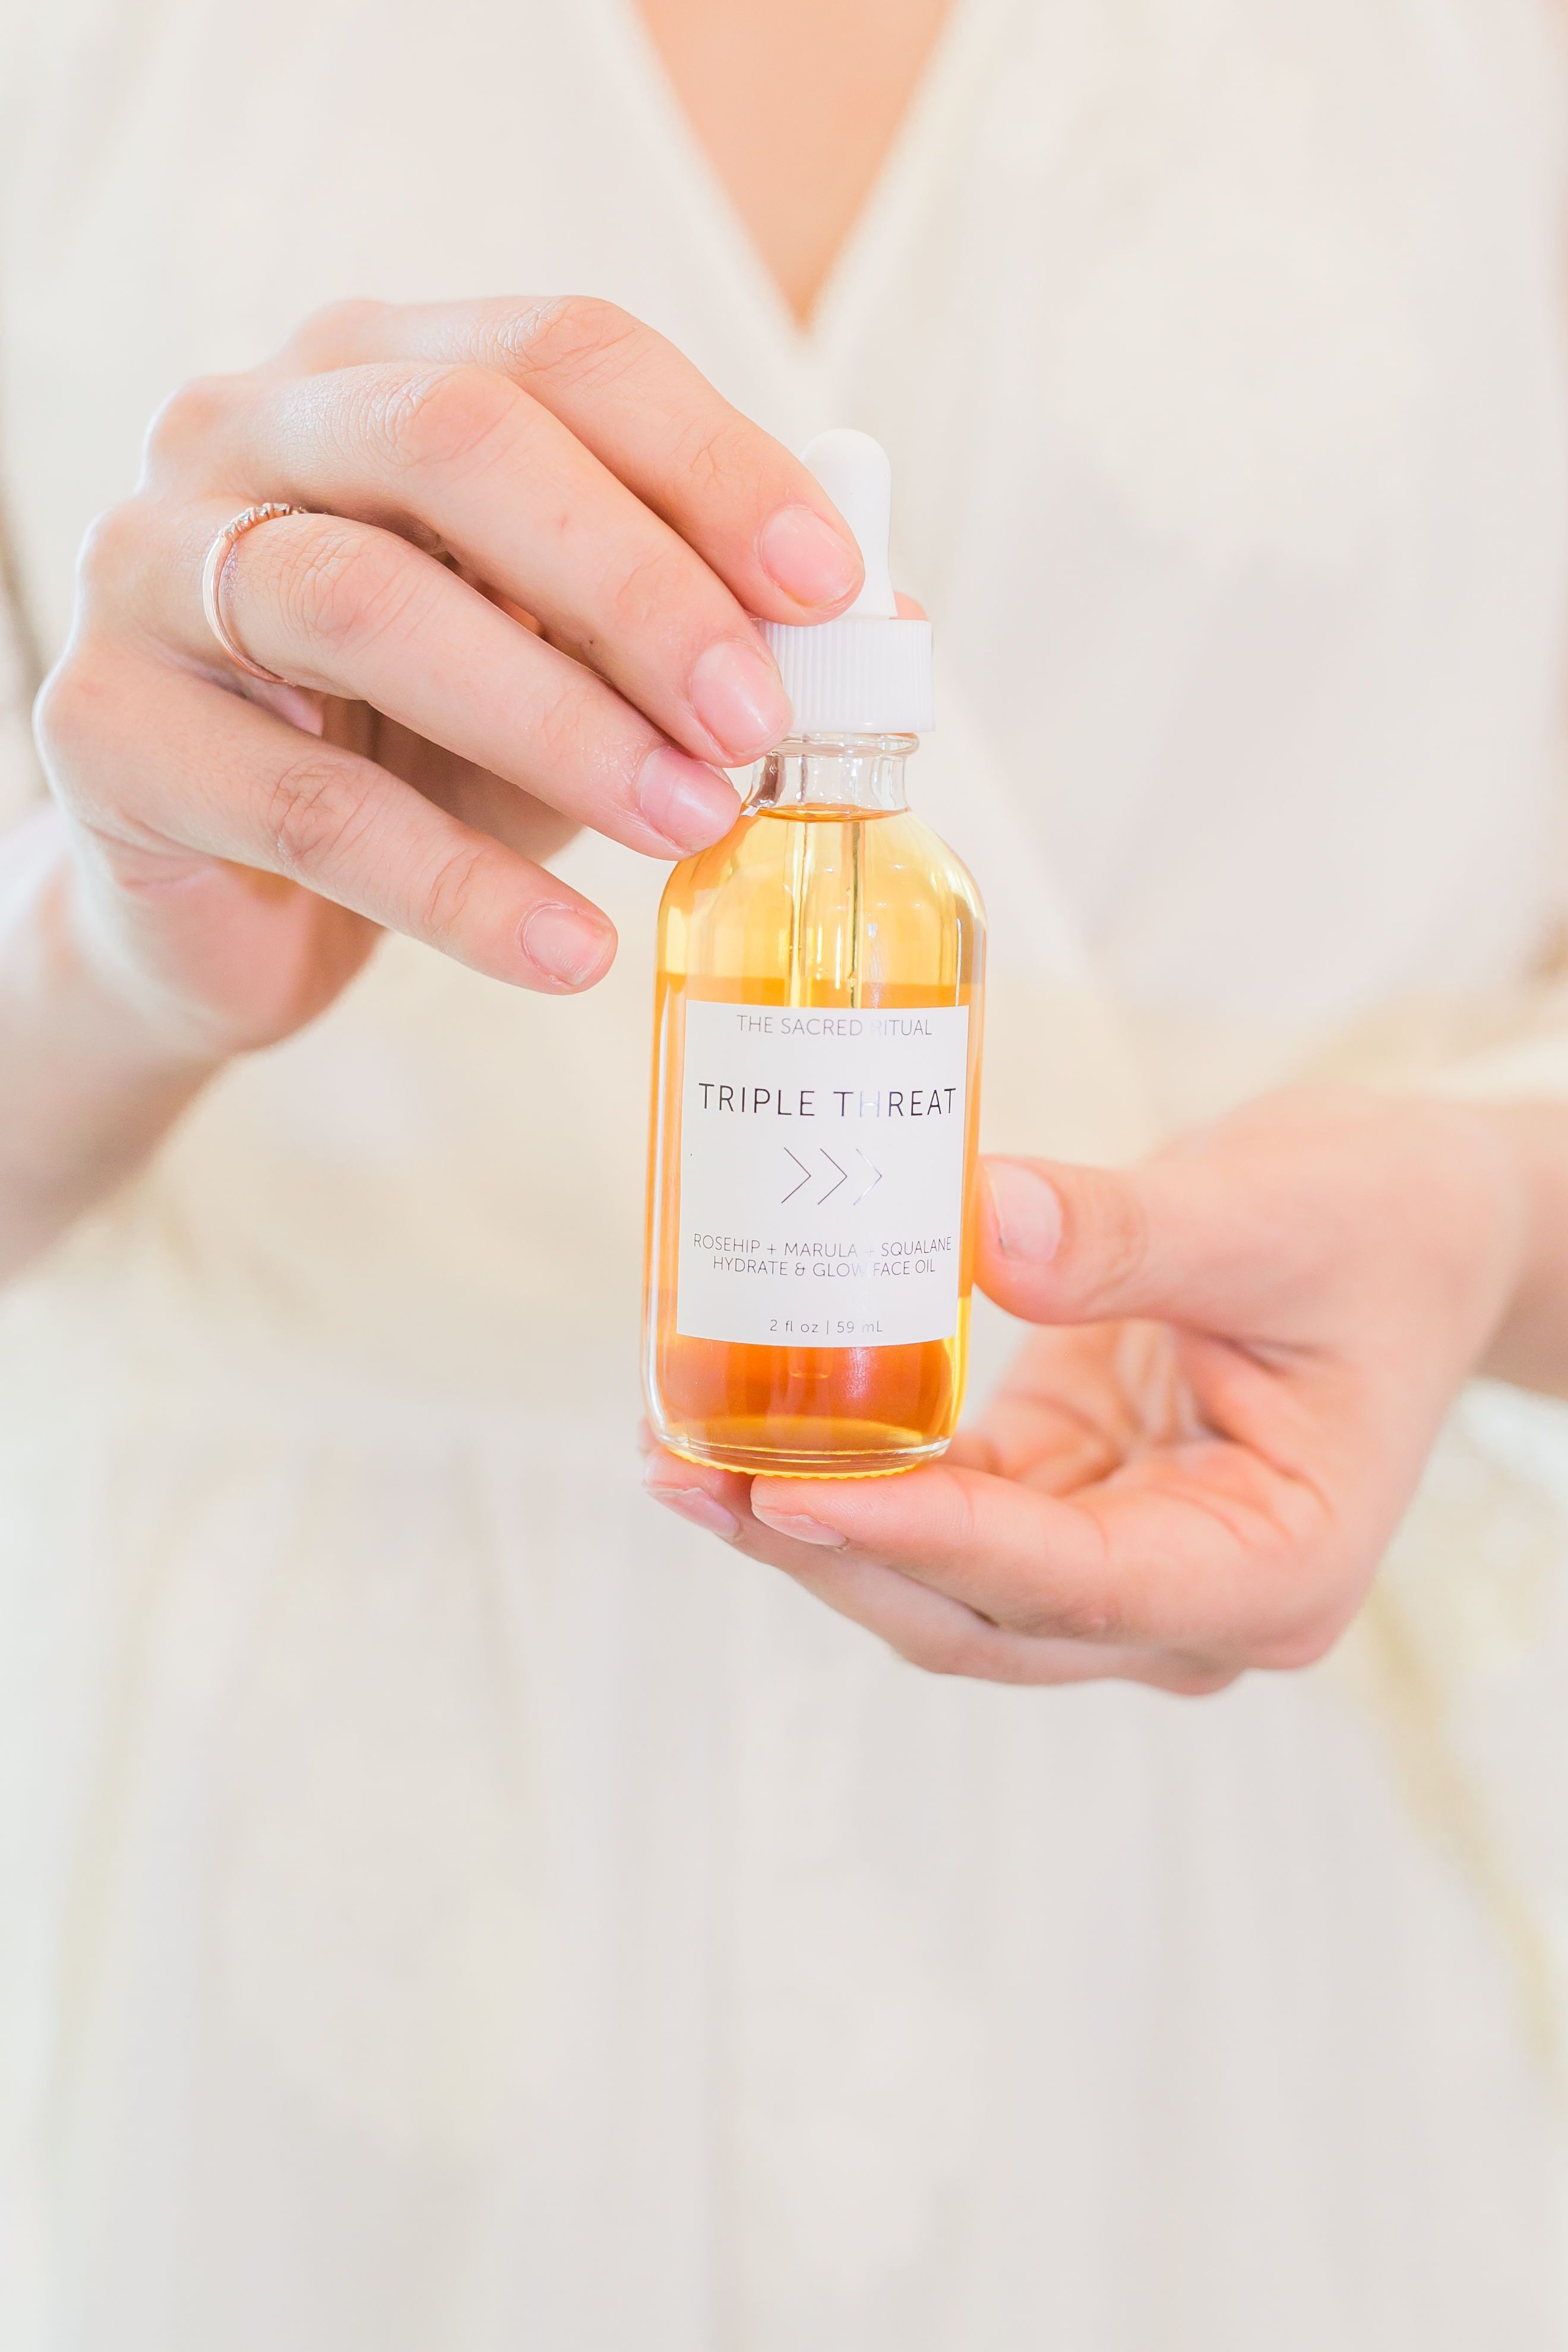 Branding And Product Photography For The Sacred Ritual Skin Care